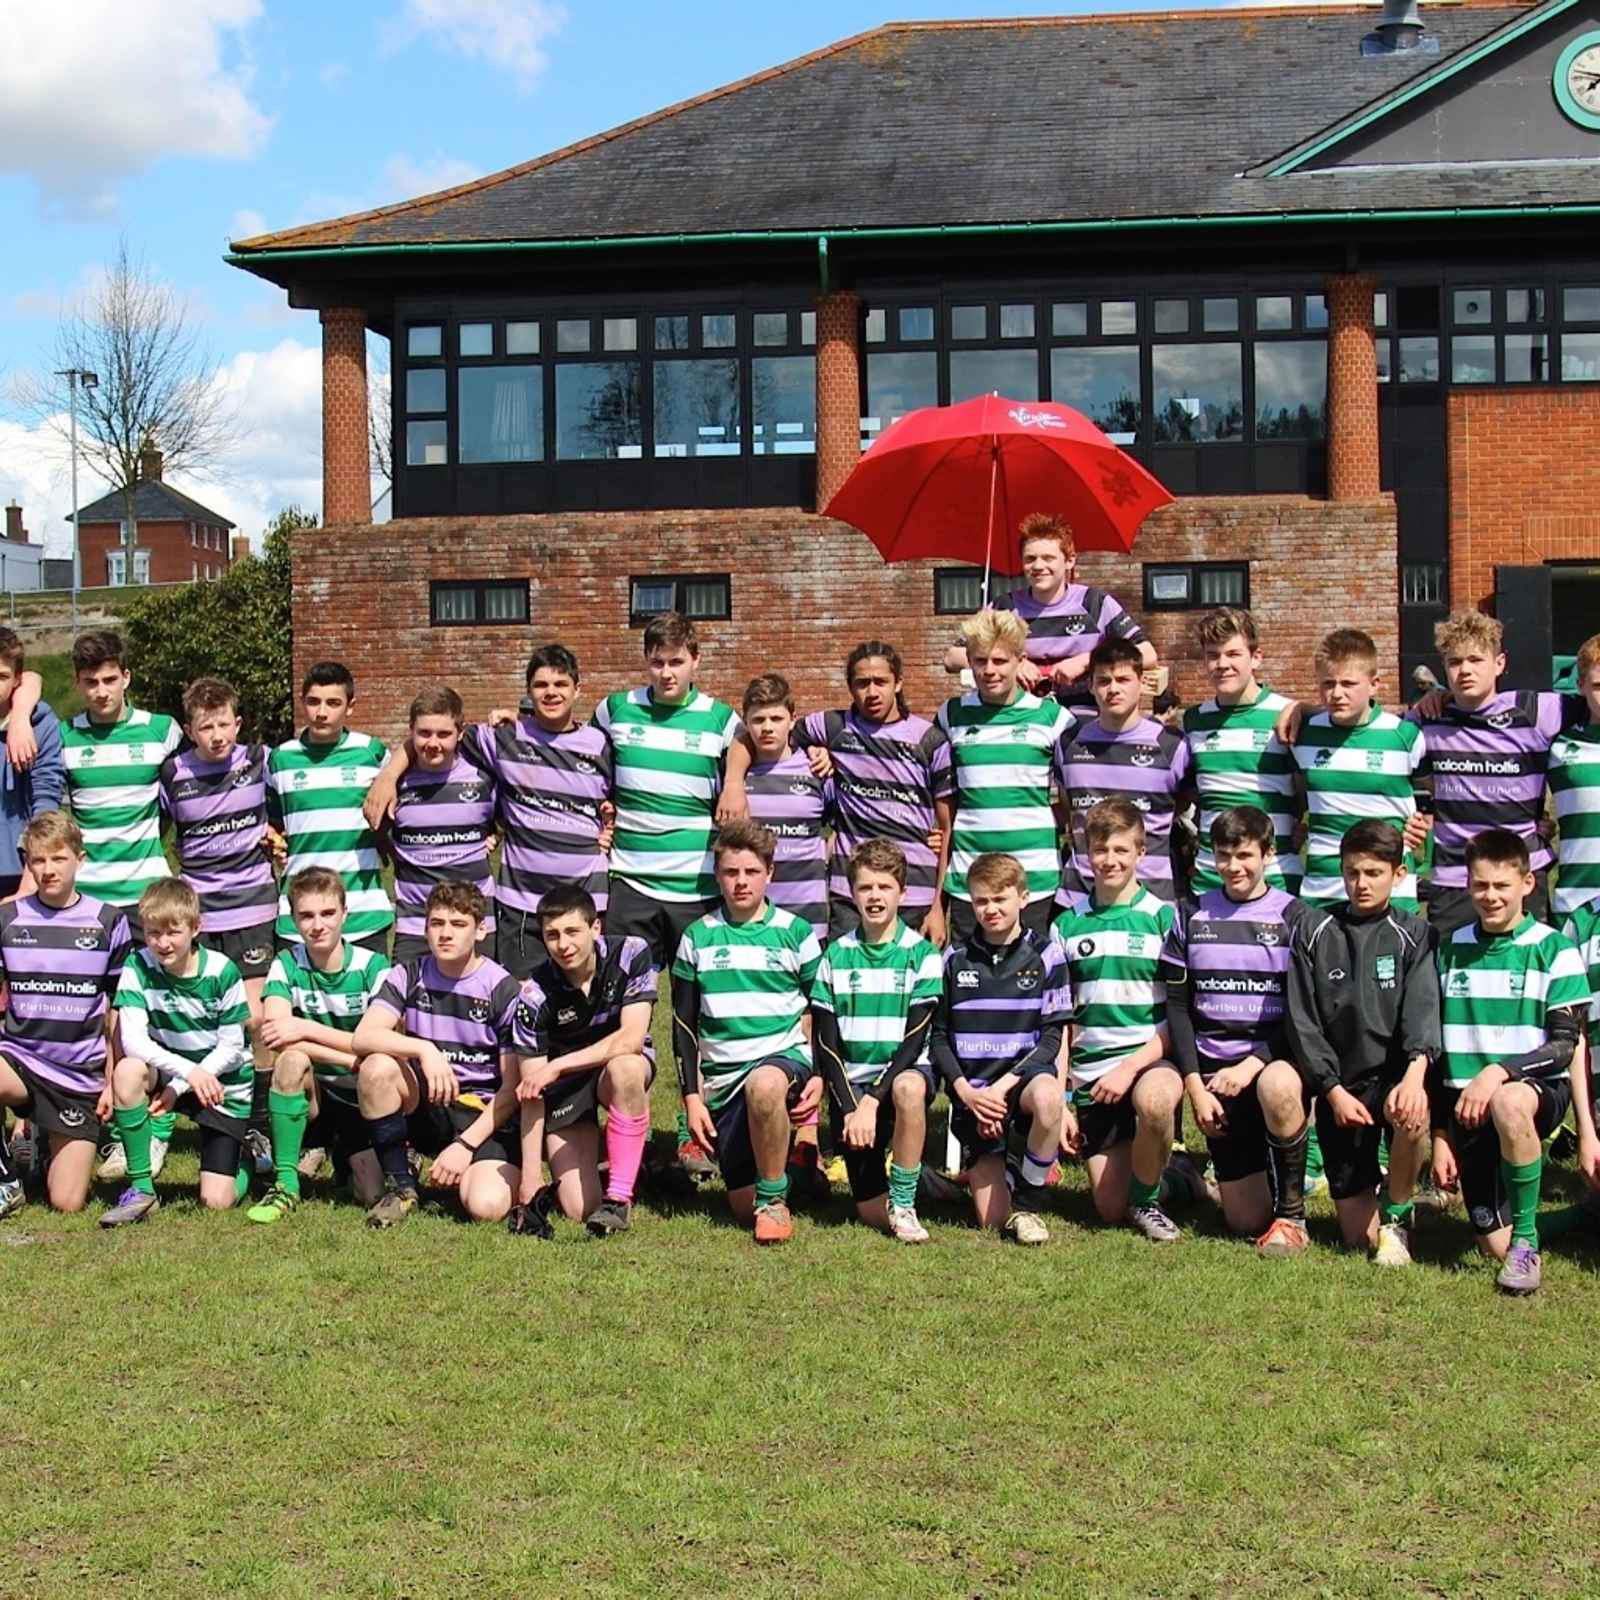 DRFC U14s faced tough test against Clifton touring side ...